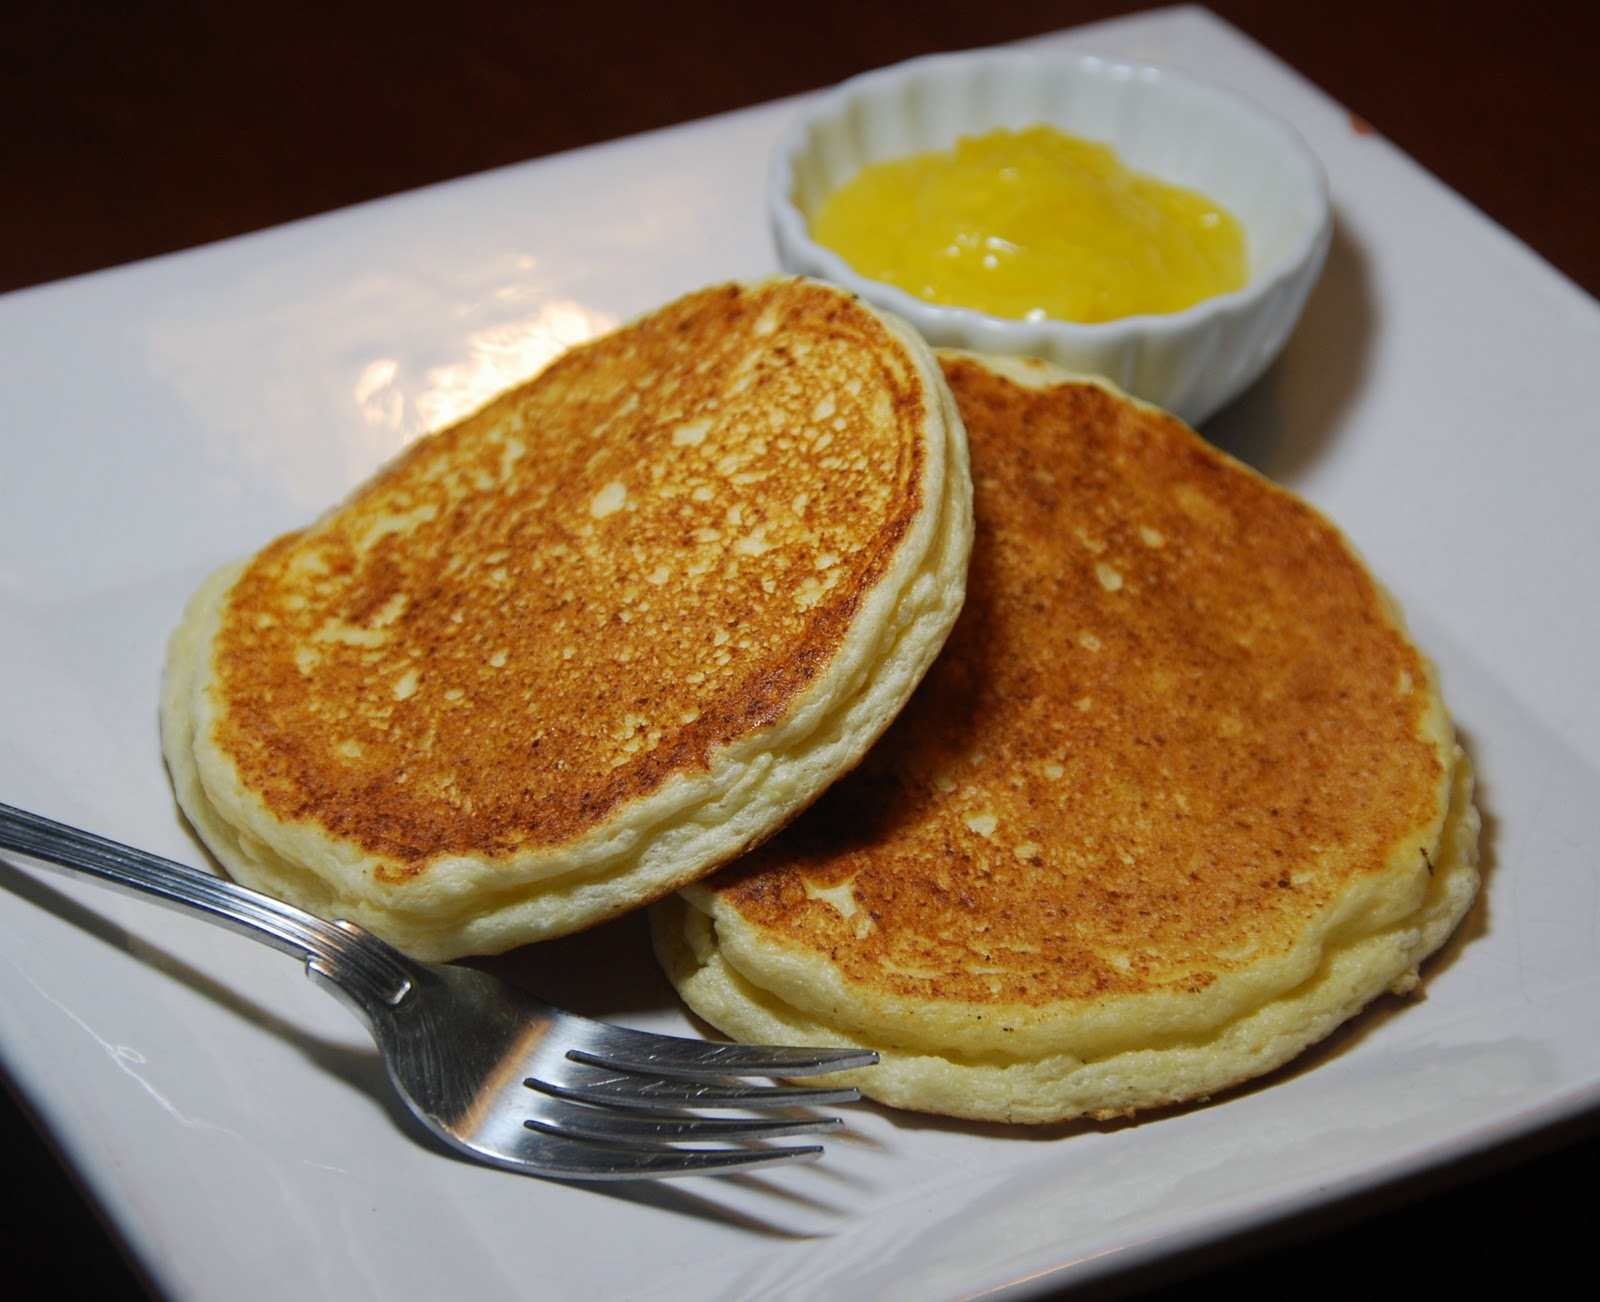 ... Kitchen with Monica: Fluffy Ricotta Pancakes with Homemade Lemon Curd